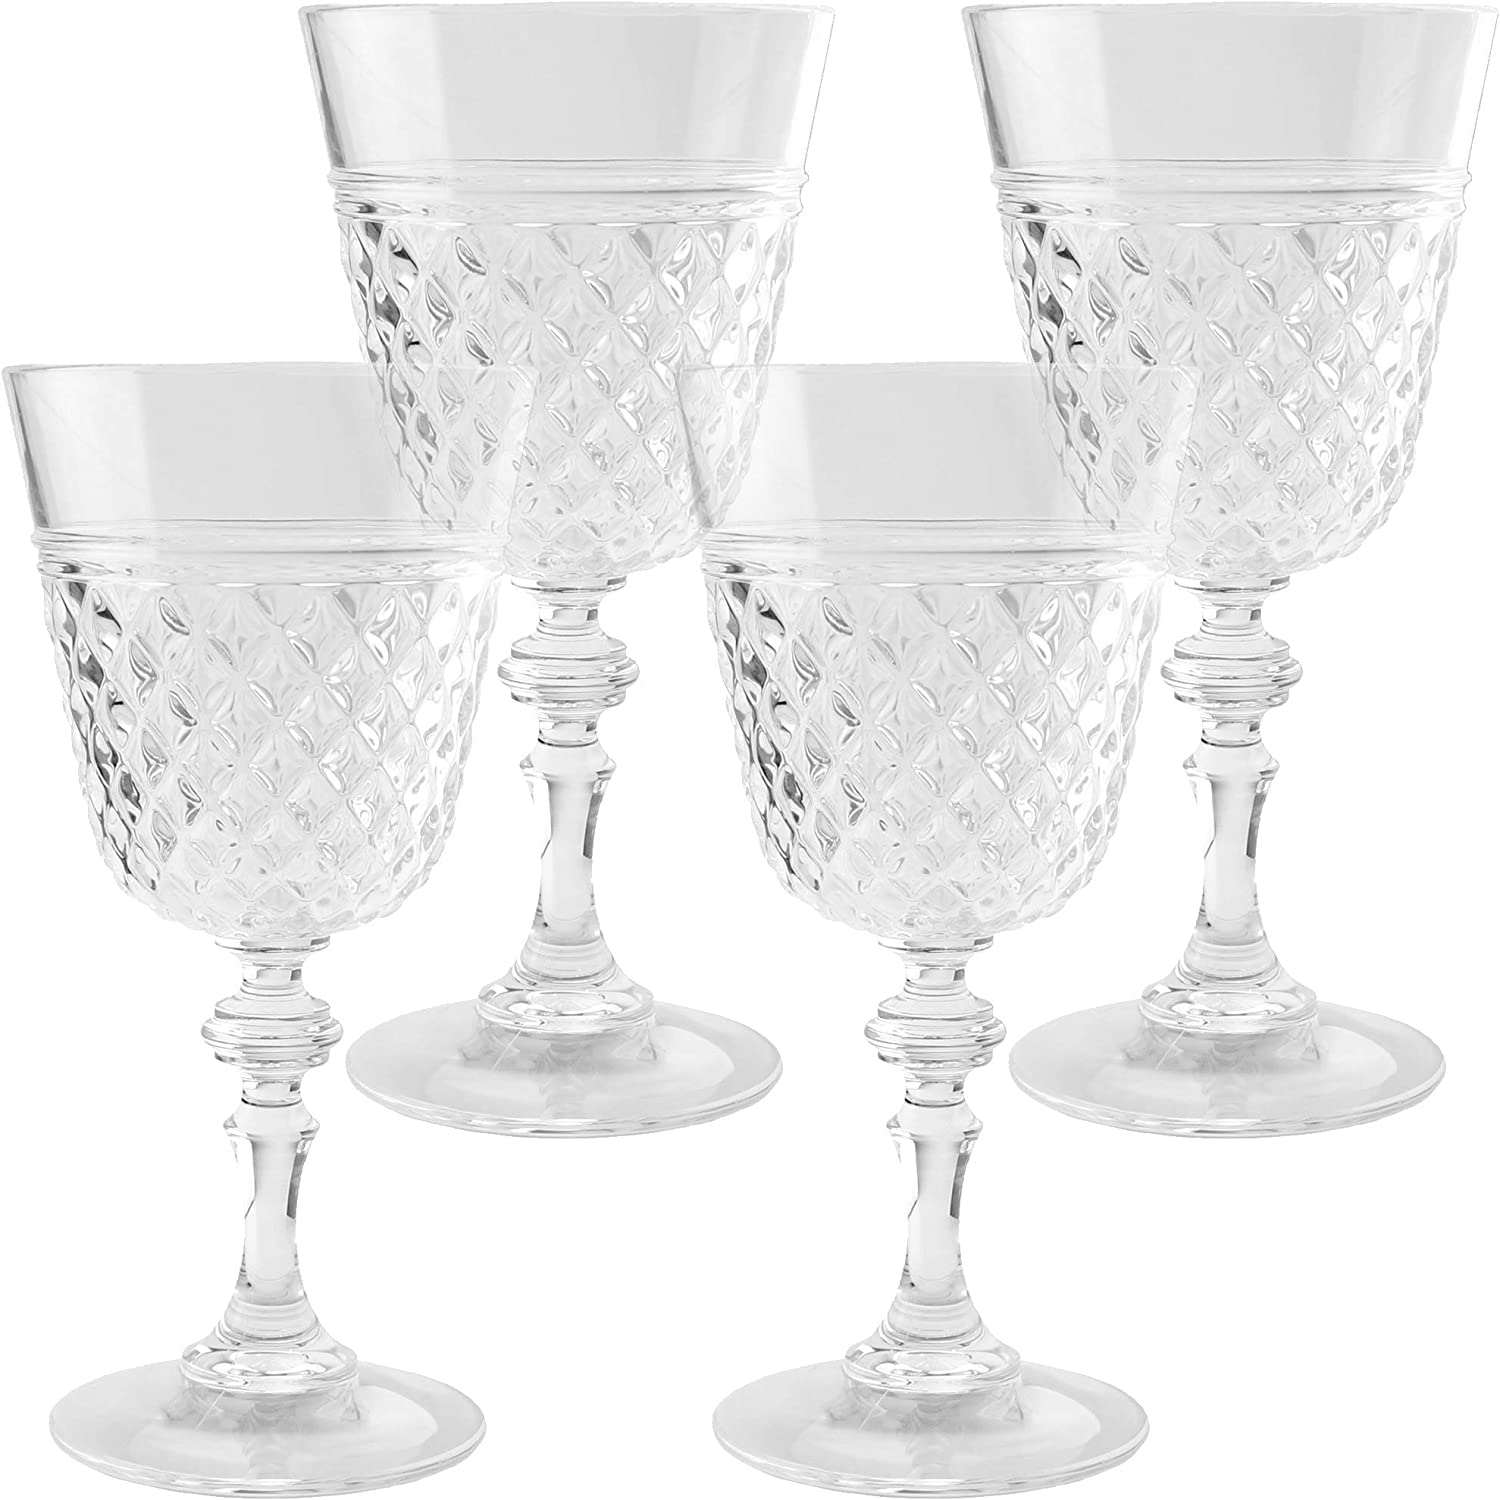 PG Clear Acrylic/Plastic Stemmed Wine Glass/Goblet/Tumbler Set 4 - Super Clear,, Durable